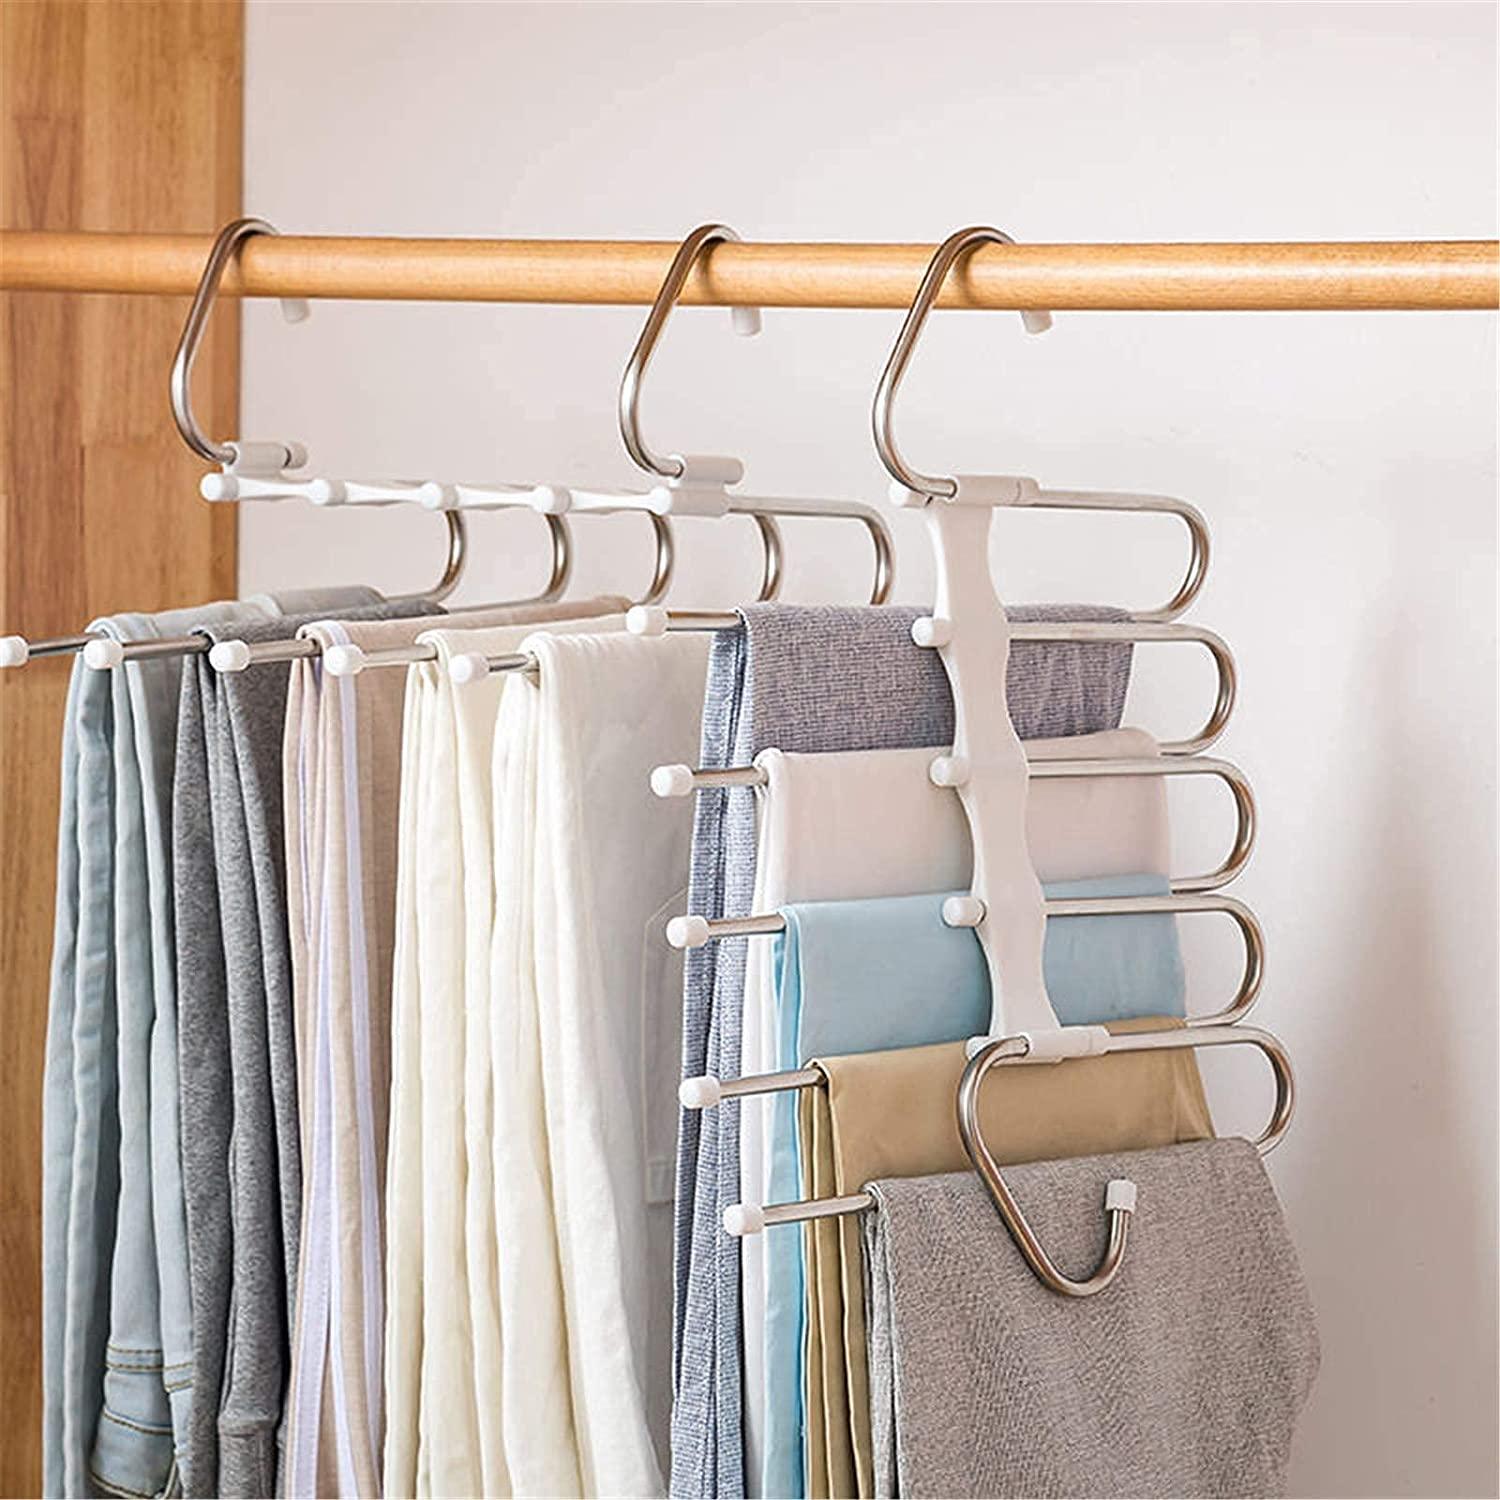 2 Safety and trust Pack Pants Hangers 5 Layers Space C online shopping Rack Non-Slip Saving